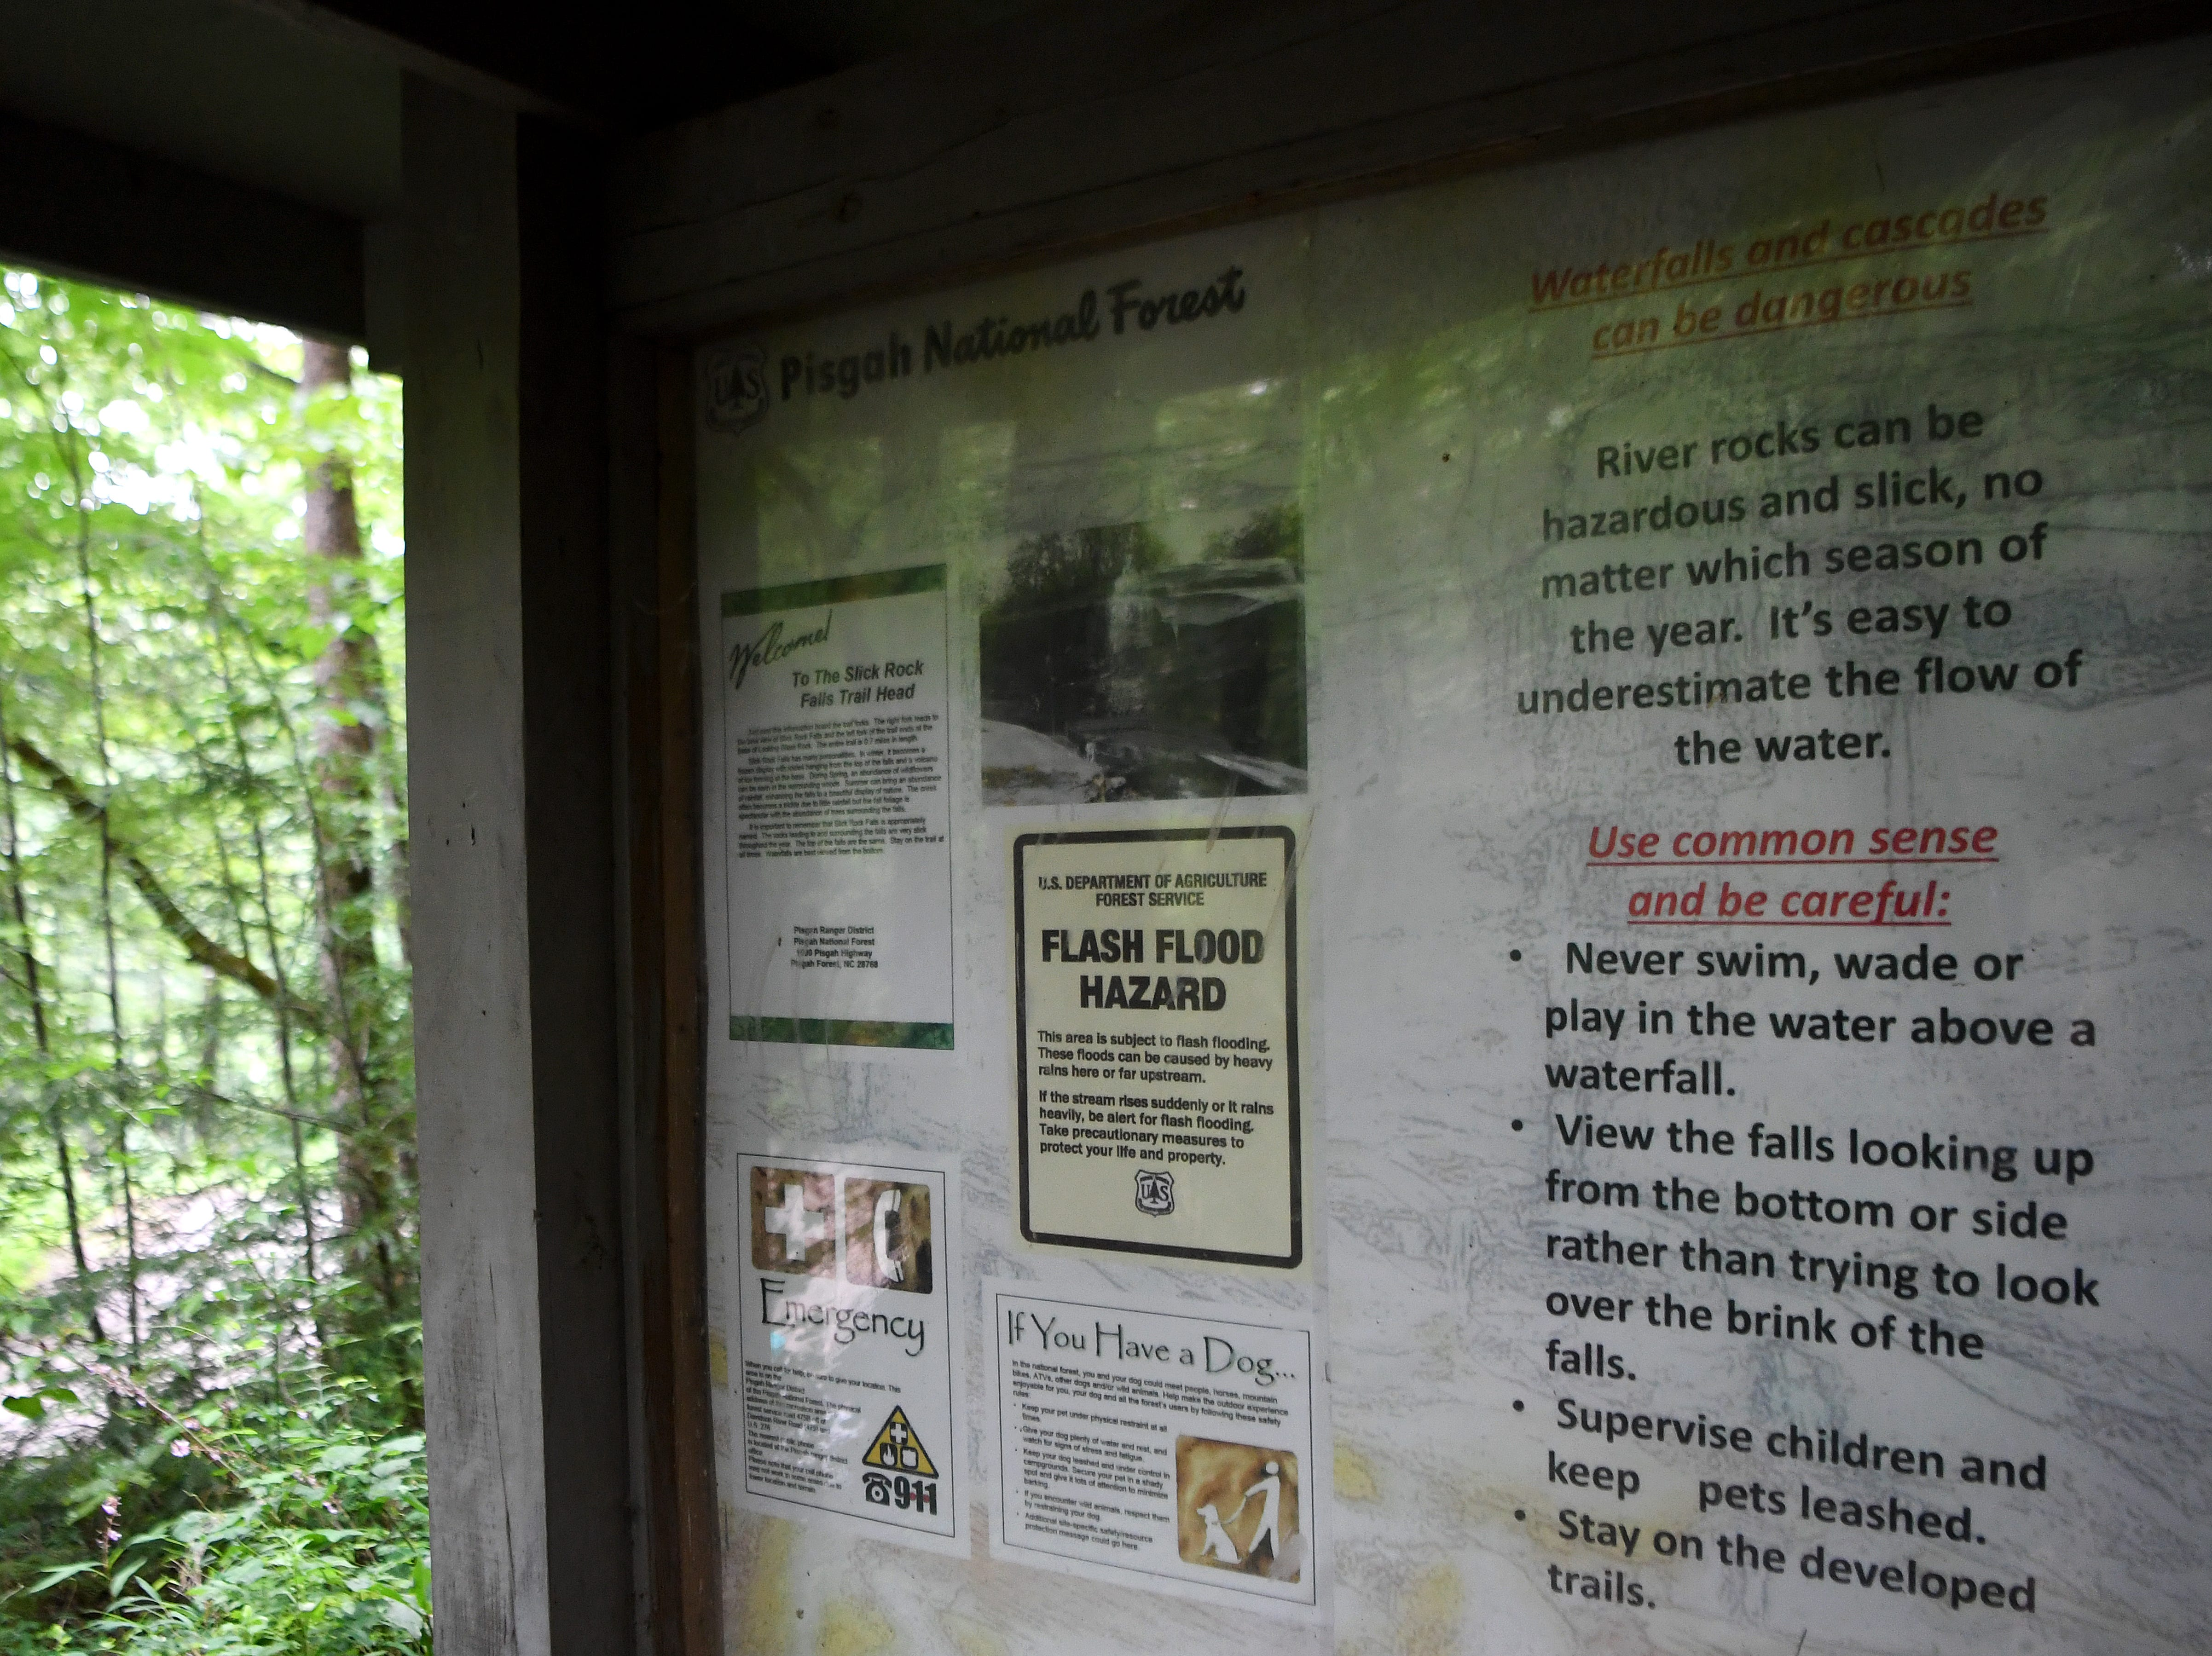 A detailed list of waterfall safety tips greets visitors at the trailhead of Slick Rock Falls in the Pisgah National Forest in Transylvania County.